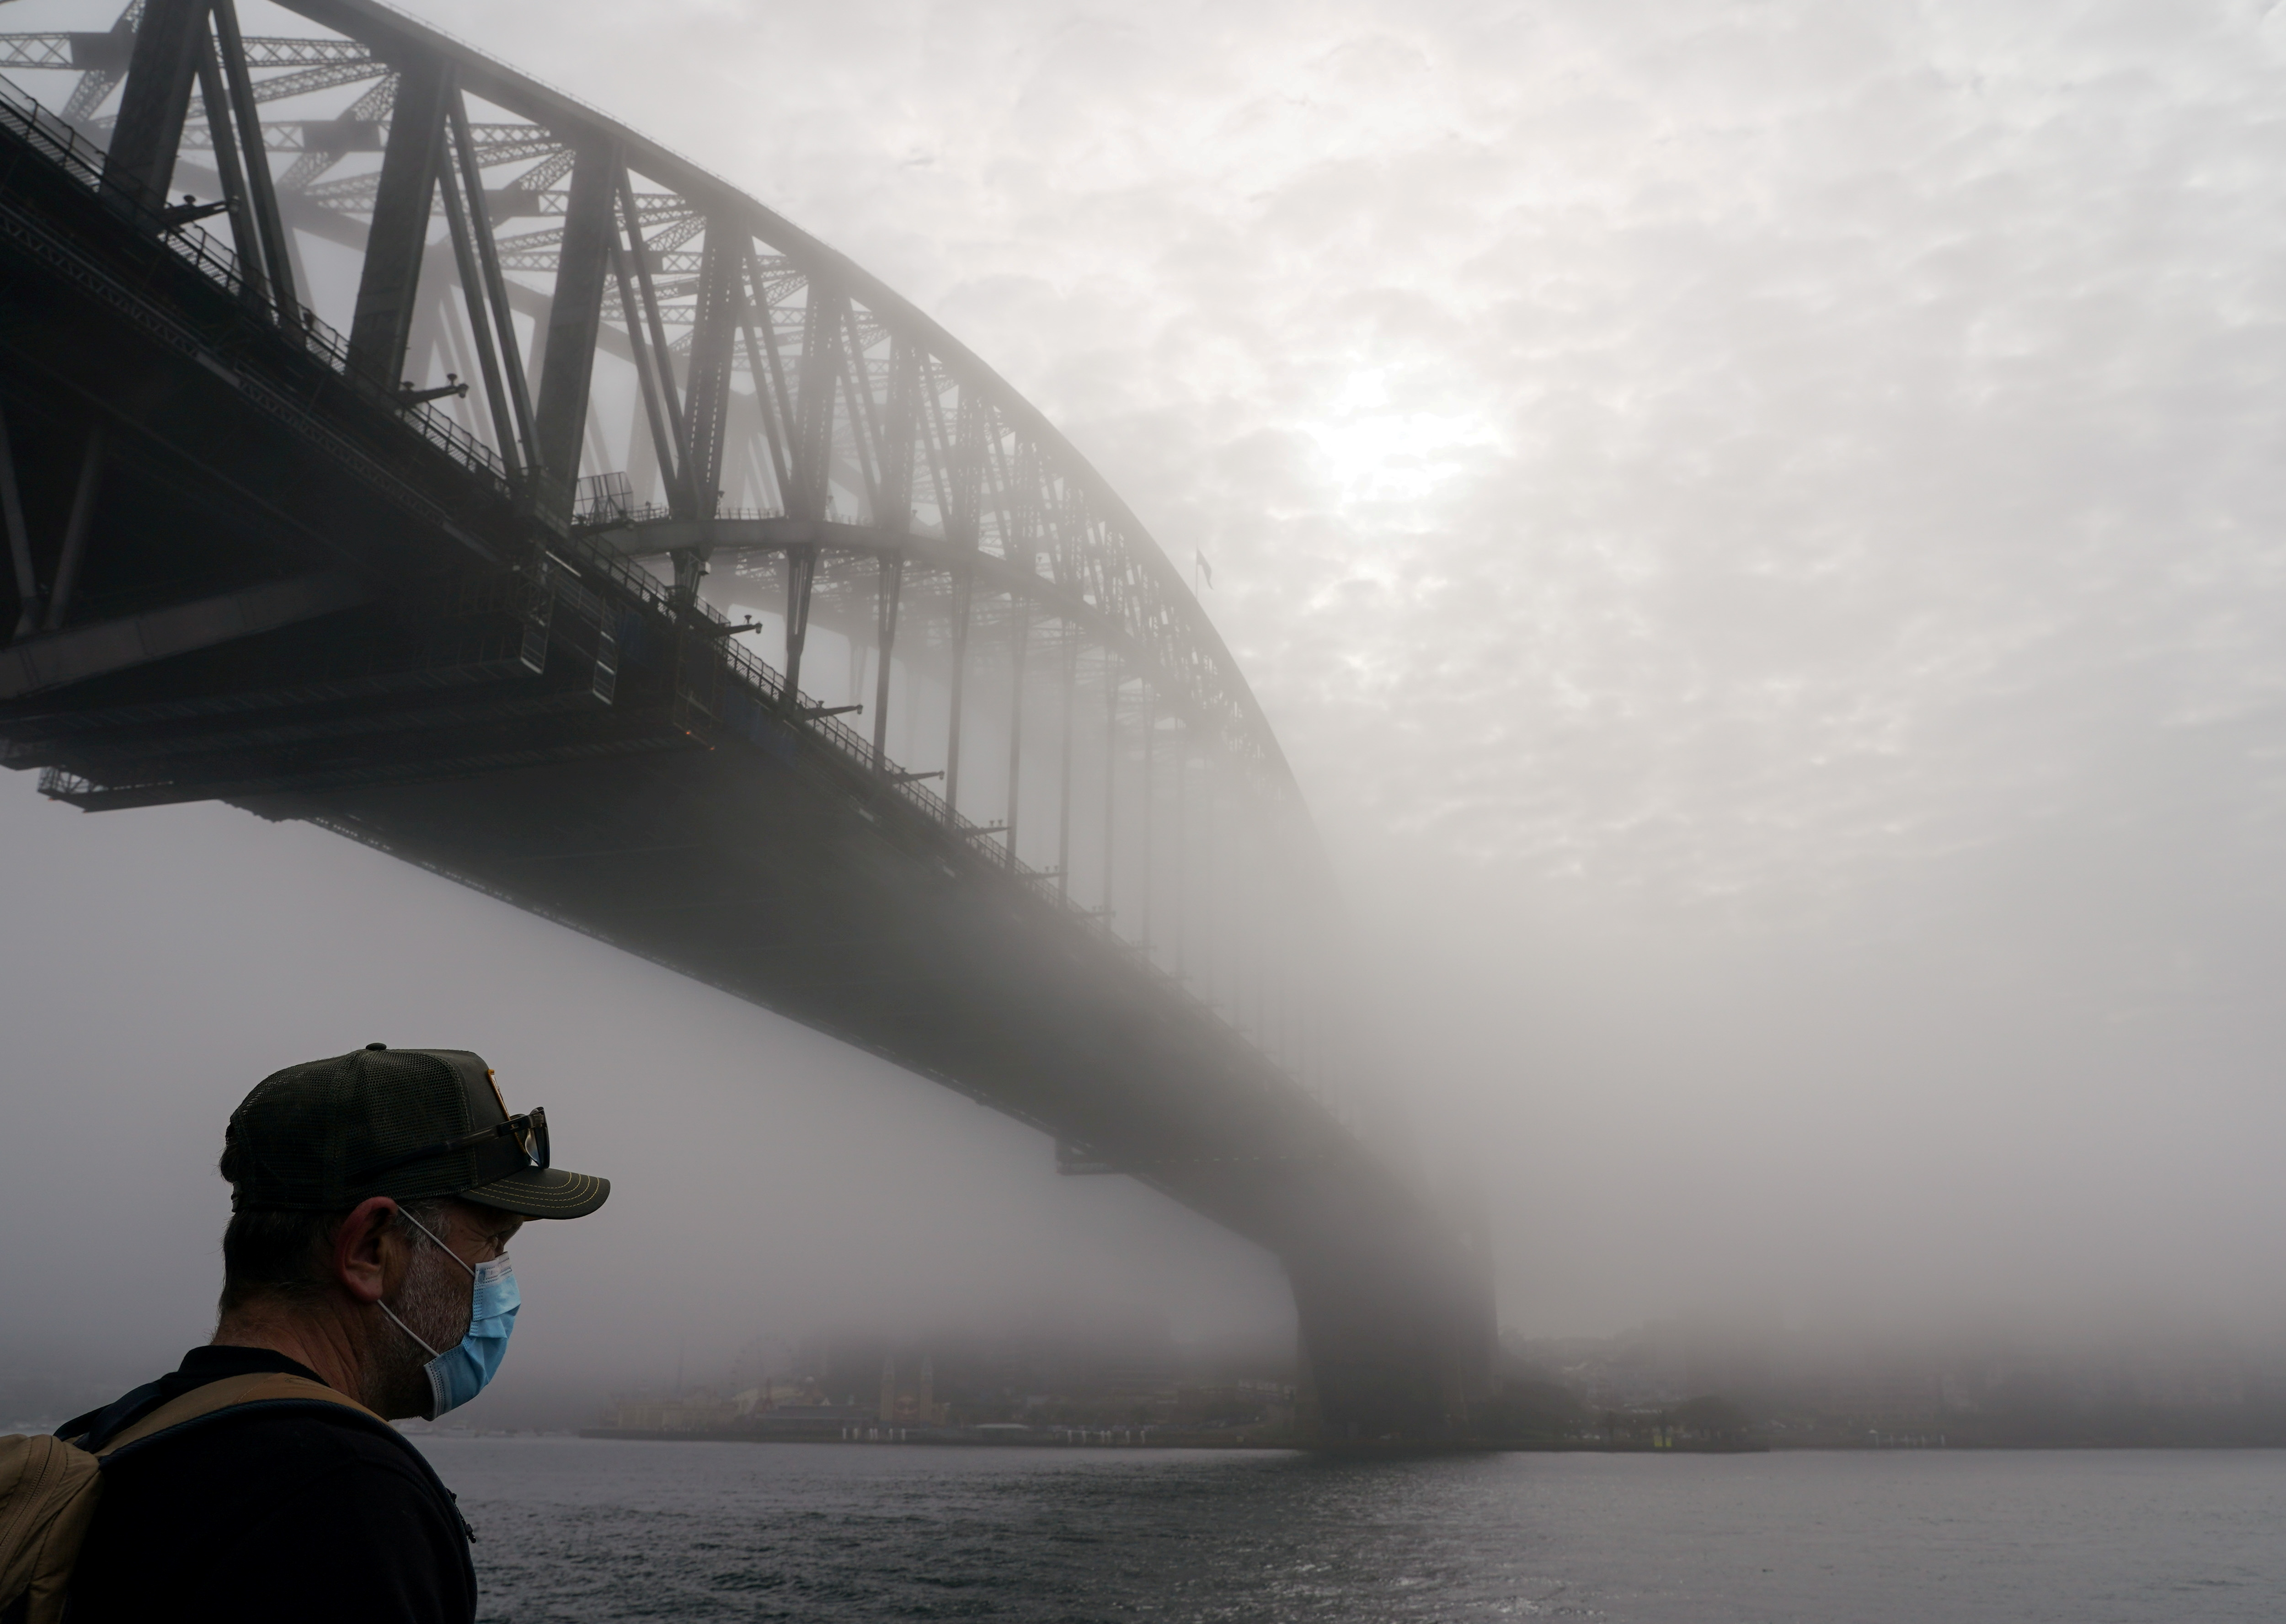 A man wearing a protective face mask takes in the waterfront view under the Sydney Harbour Bridge, seen shrouded in morning fog, during a lockdown to curb the spread of a coronavirus disease (COVID-19) outbreak in Sydney, Australia, July 1, 2021. REUTERS/Loren Elliott/File Photo